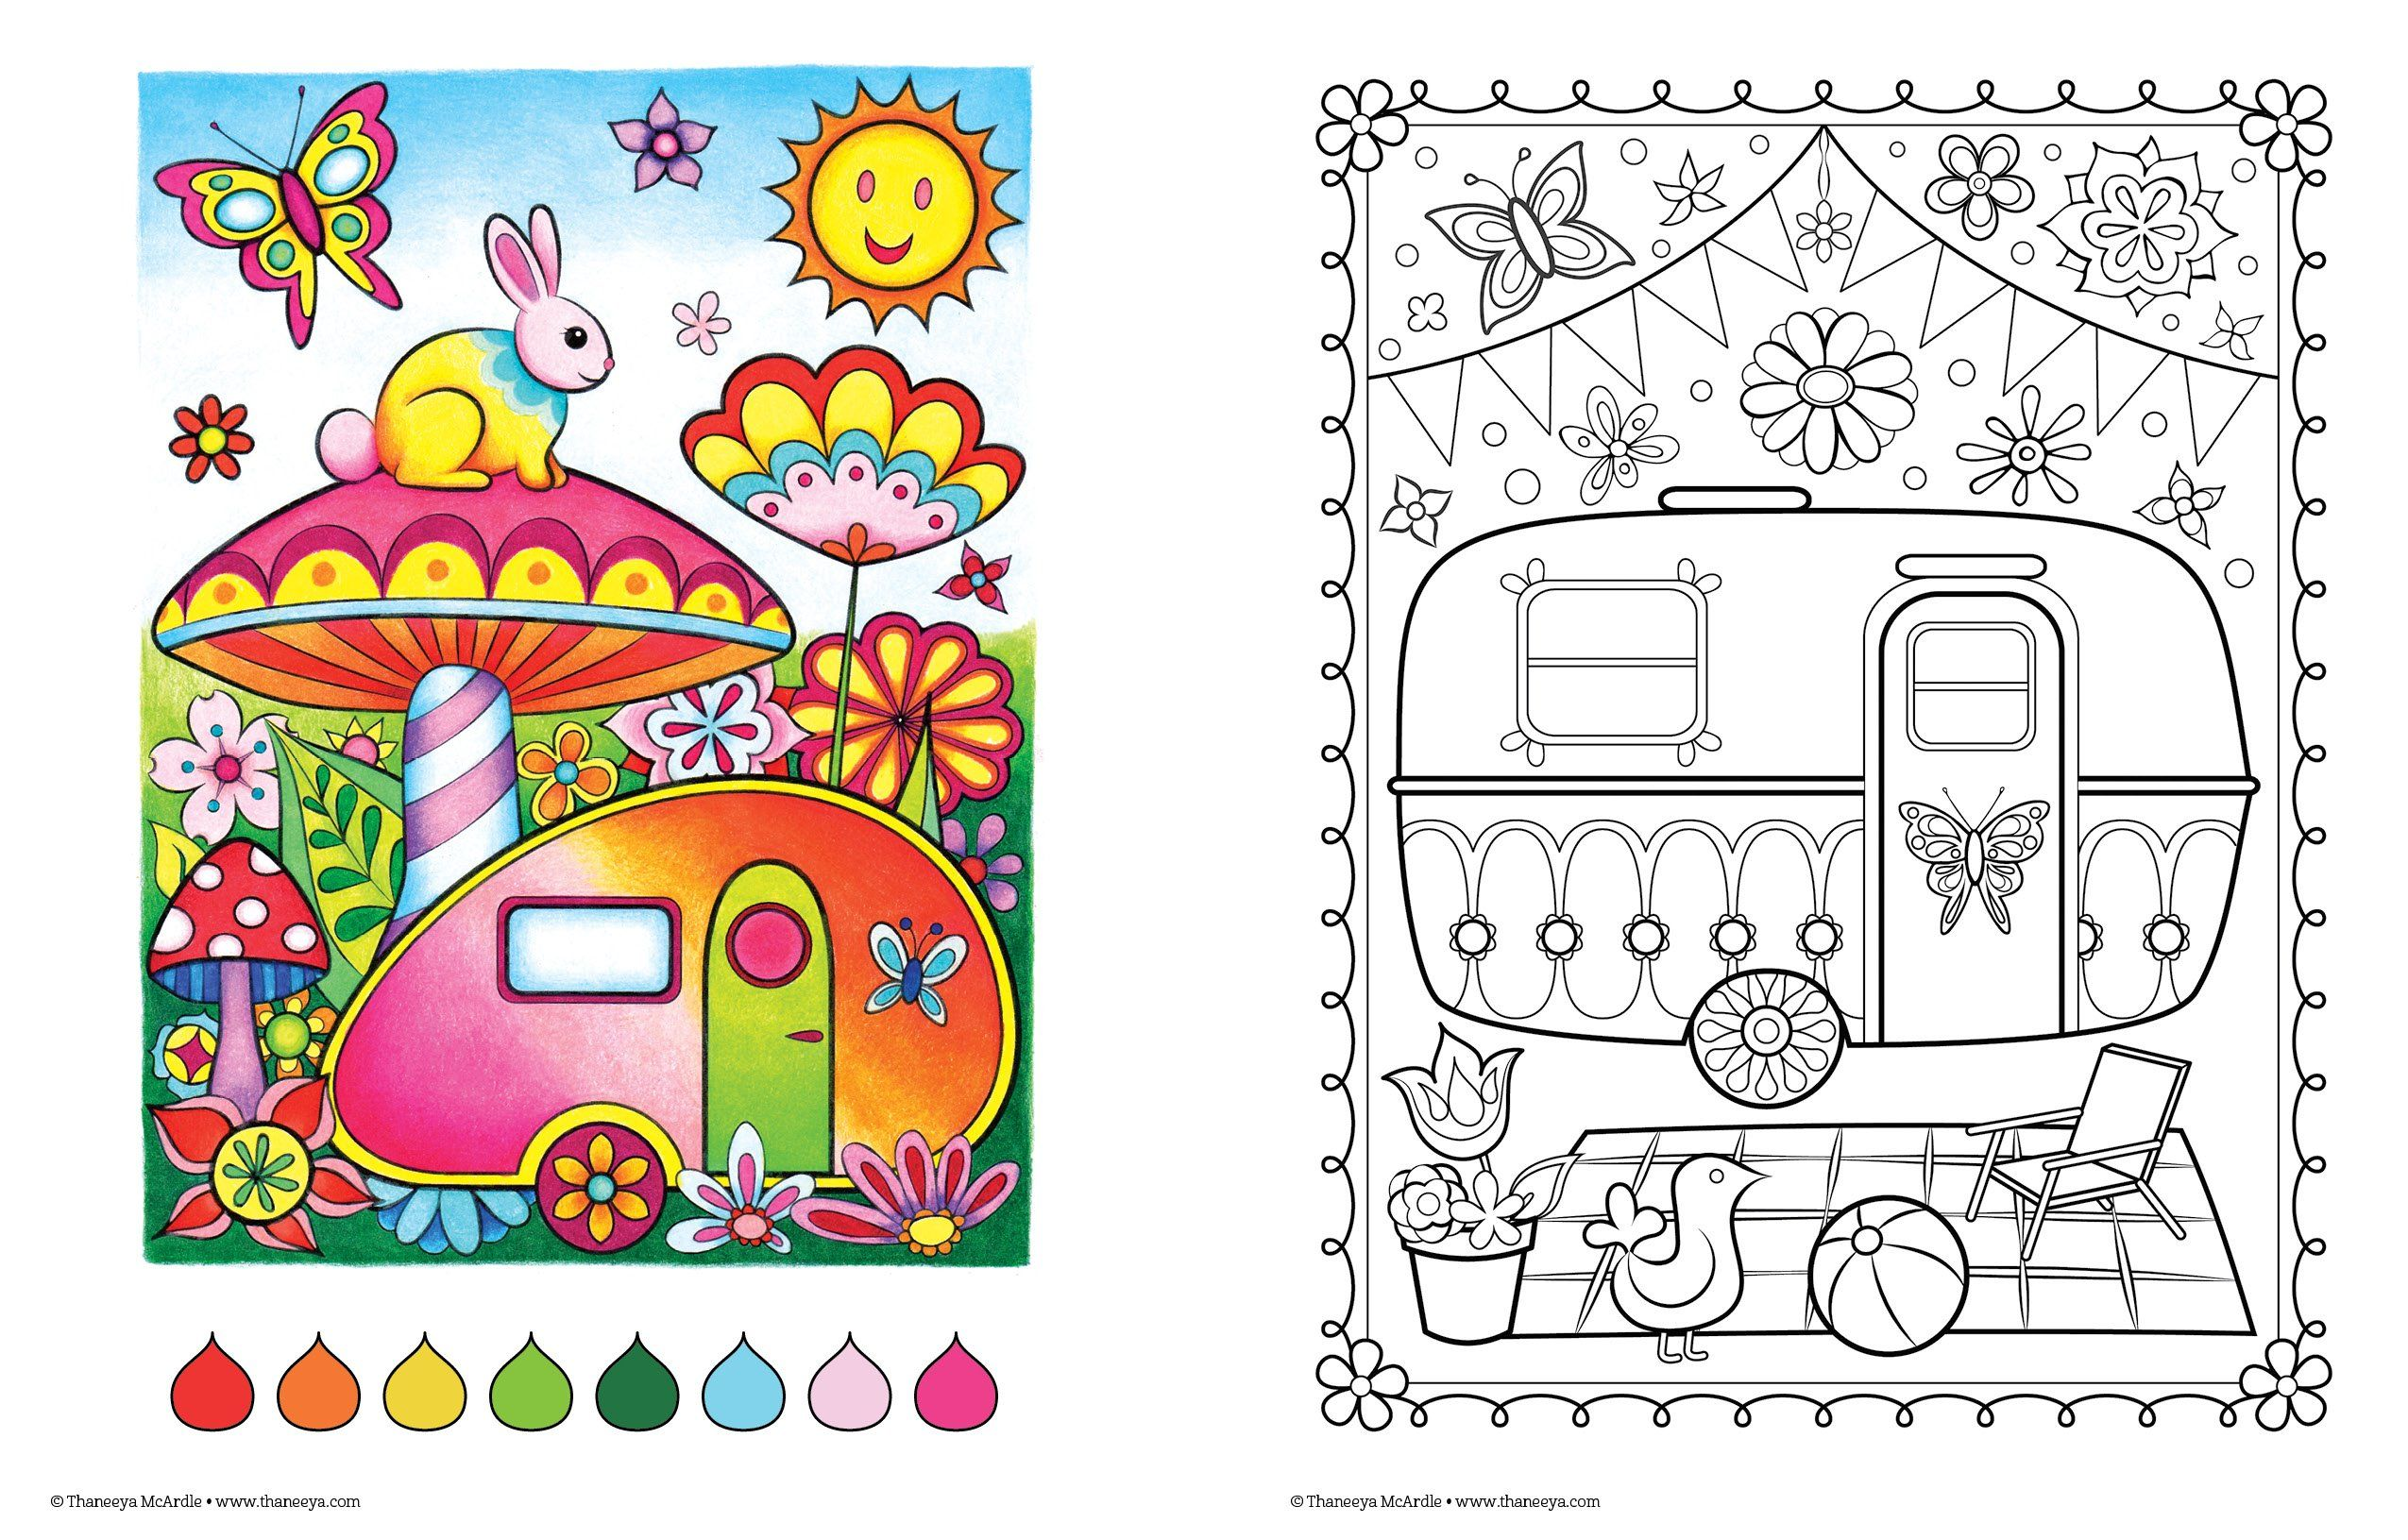 Robot Check Designs Coloring Books Coloring Books Cheerful Art